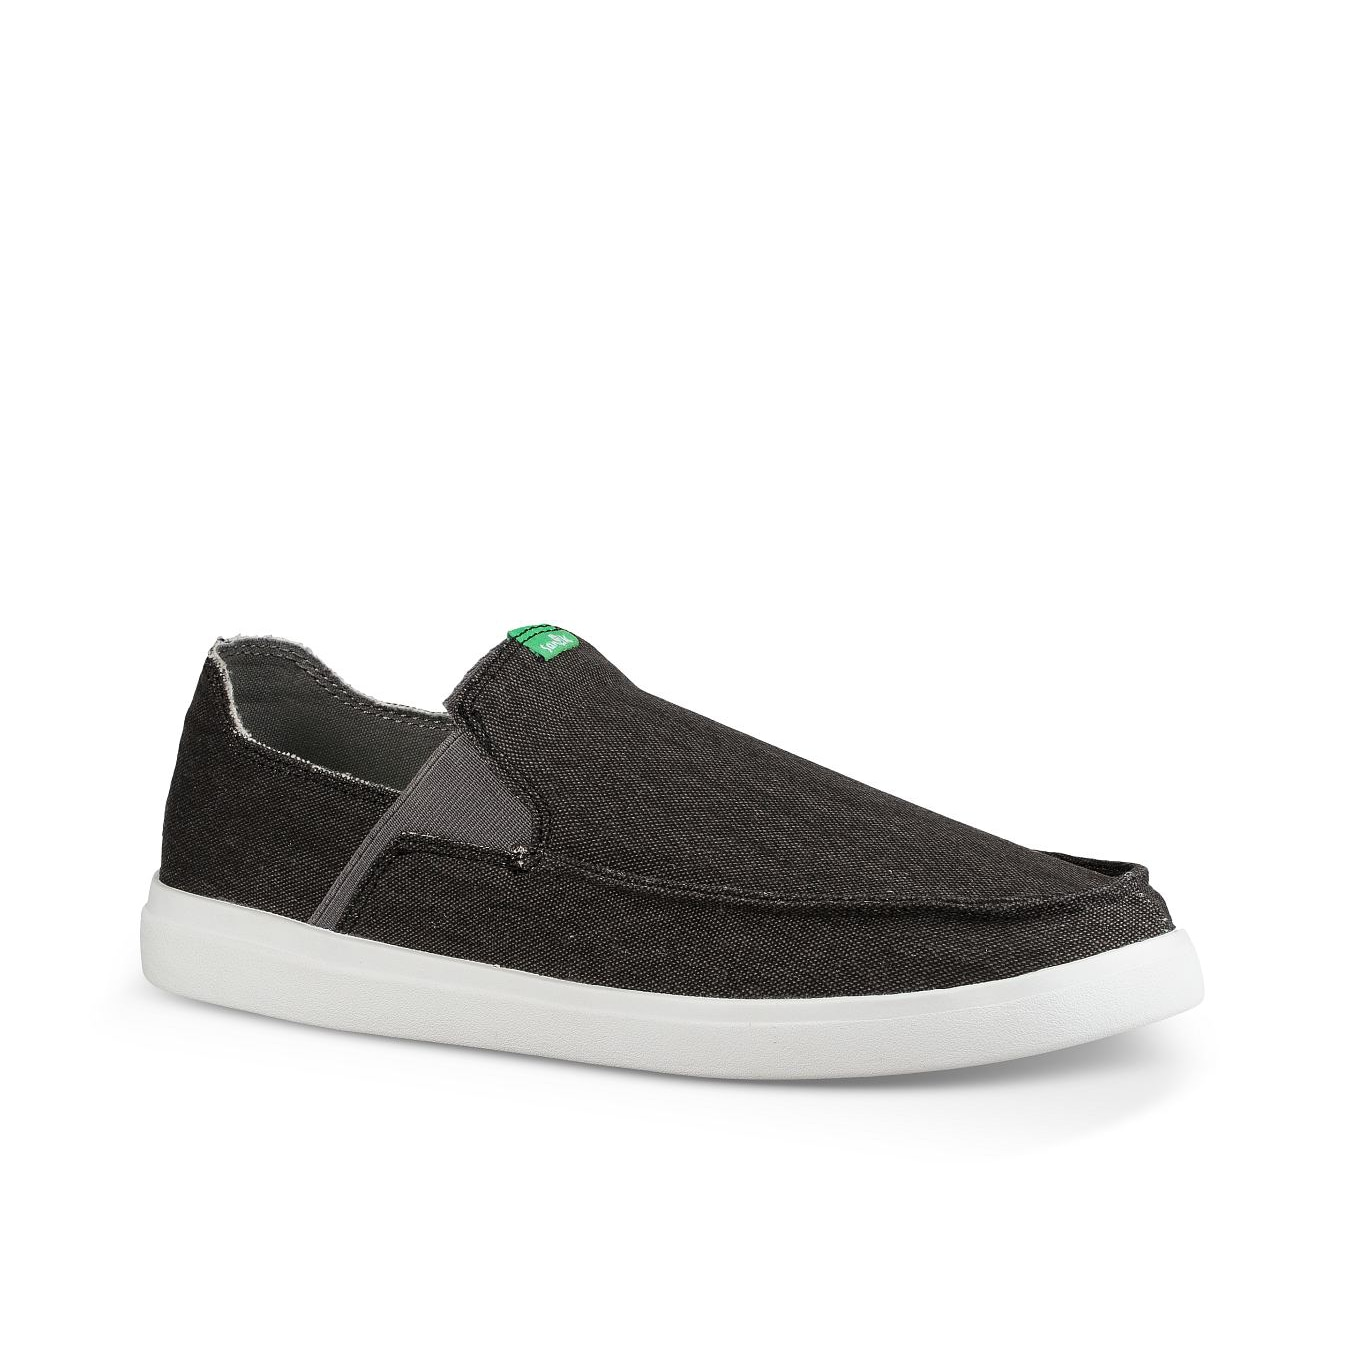 Pick Pocket Slip On Sneaker - Men's